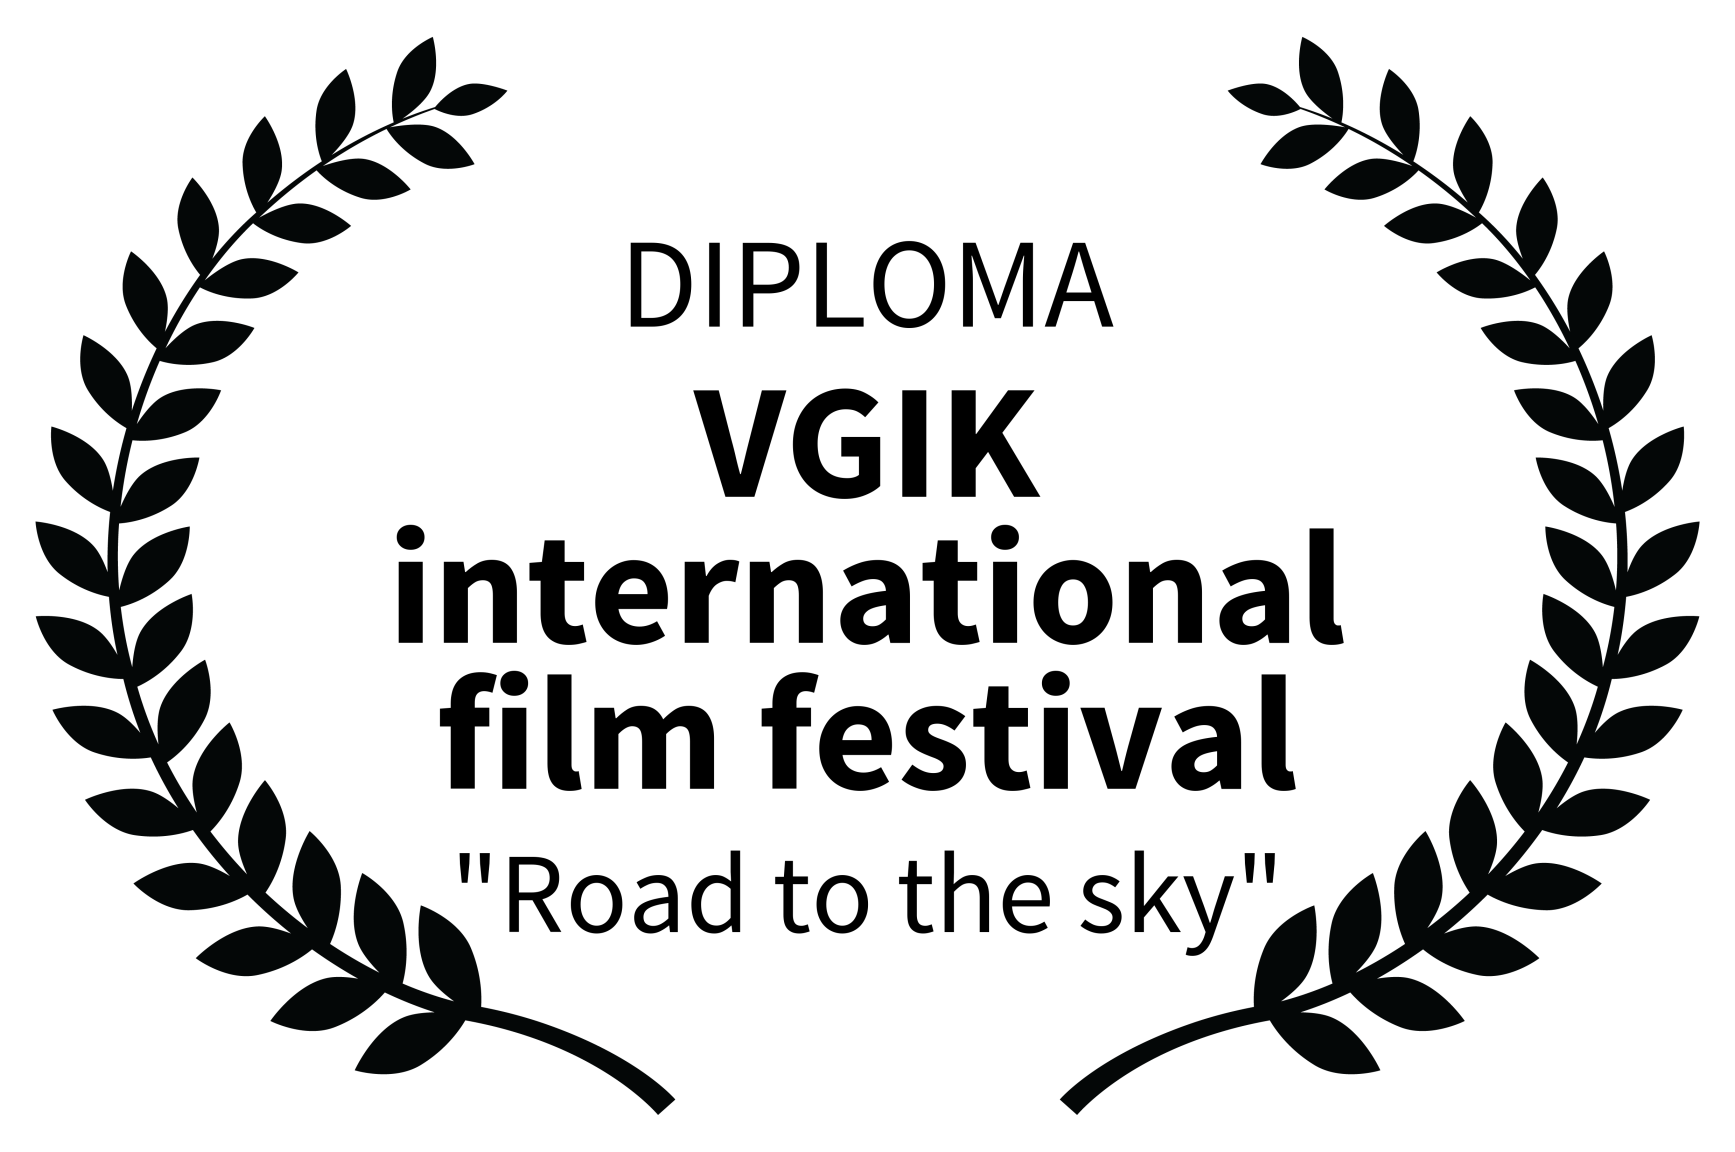 DIPLOMA - VGIK international film festiv